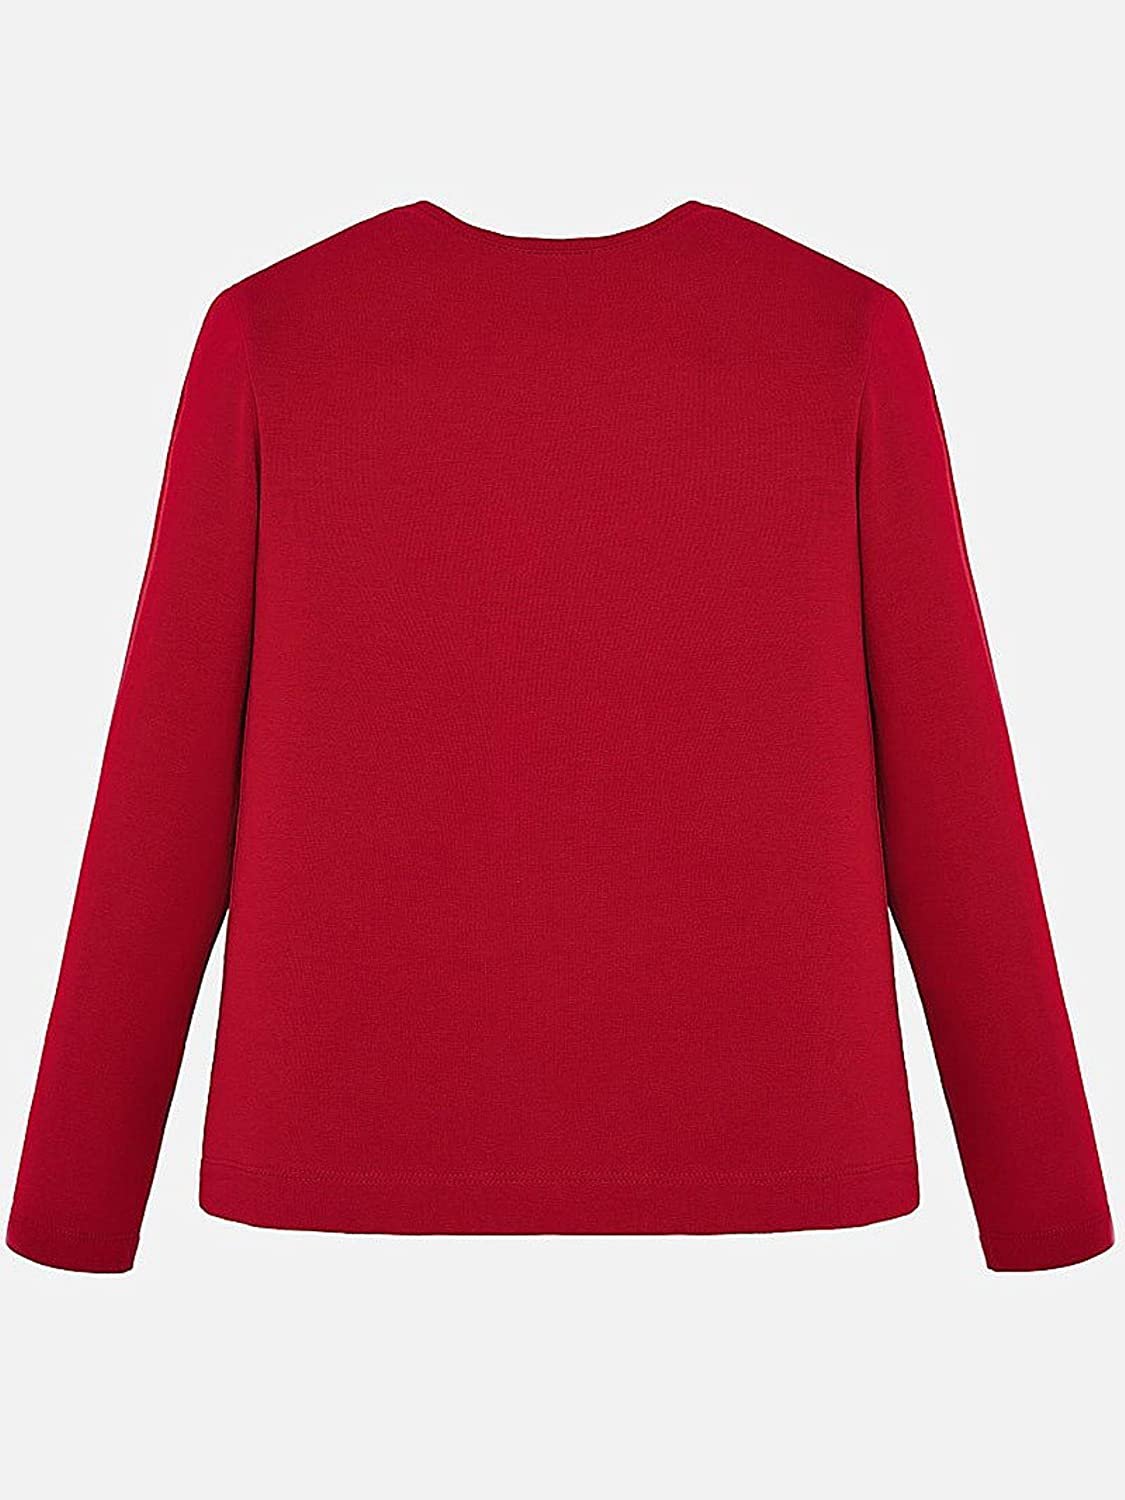 0830 Red L//s Basic t-Shirt for Girls Mayoral